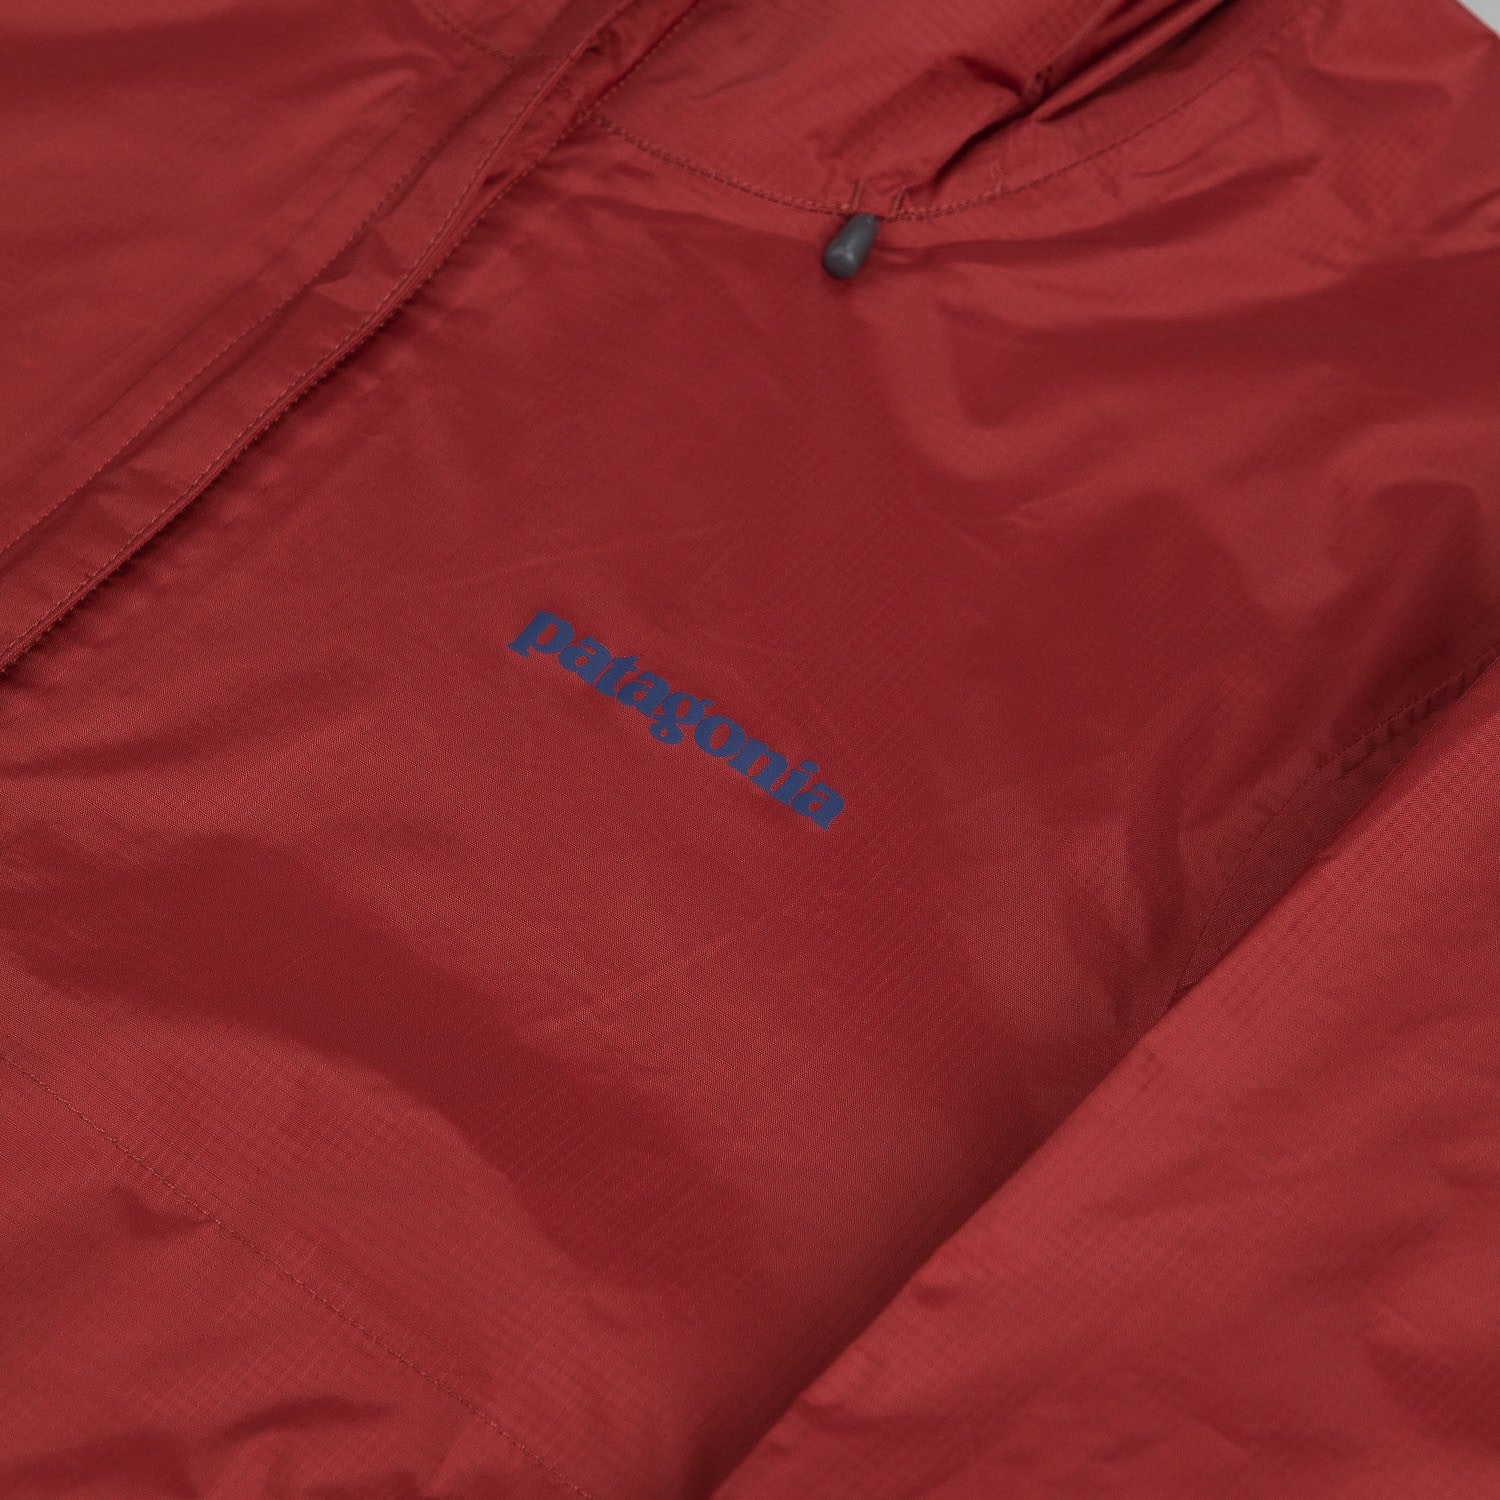 Patagonia Torrentshell Jacket - Rusted Iron